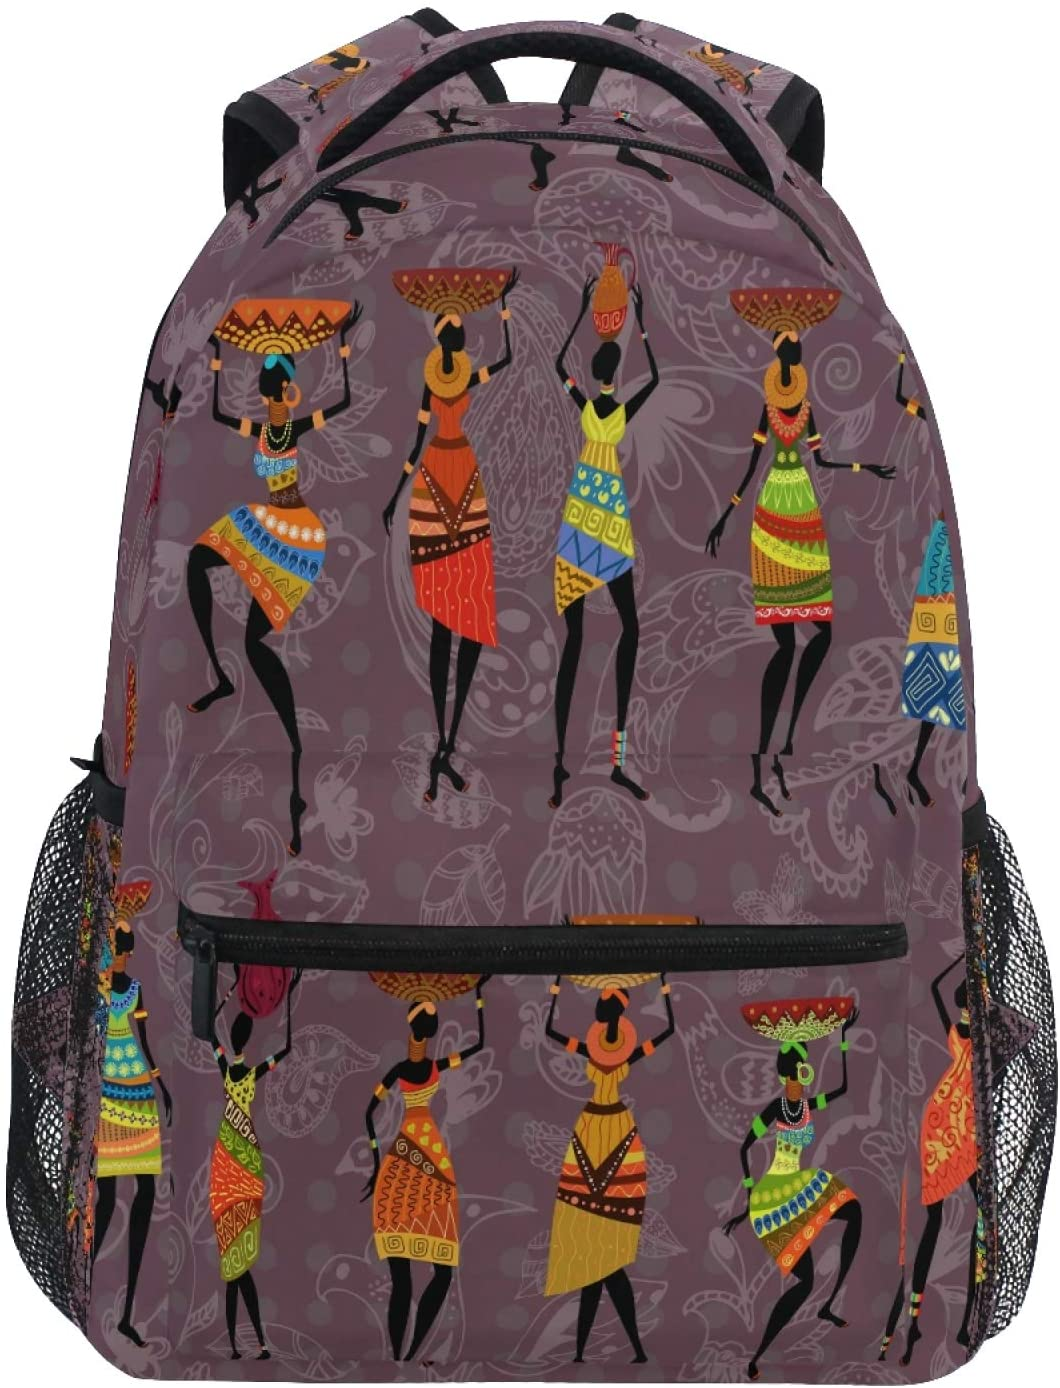 Ombra Backpack African Tribal Women School Shoulder Bag Large Waterproof Durable Bookbag Laptop Daypack for Students Kids Teens Girls Boys Elementary